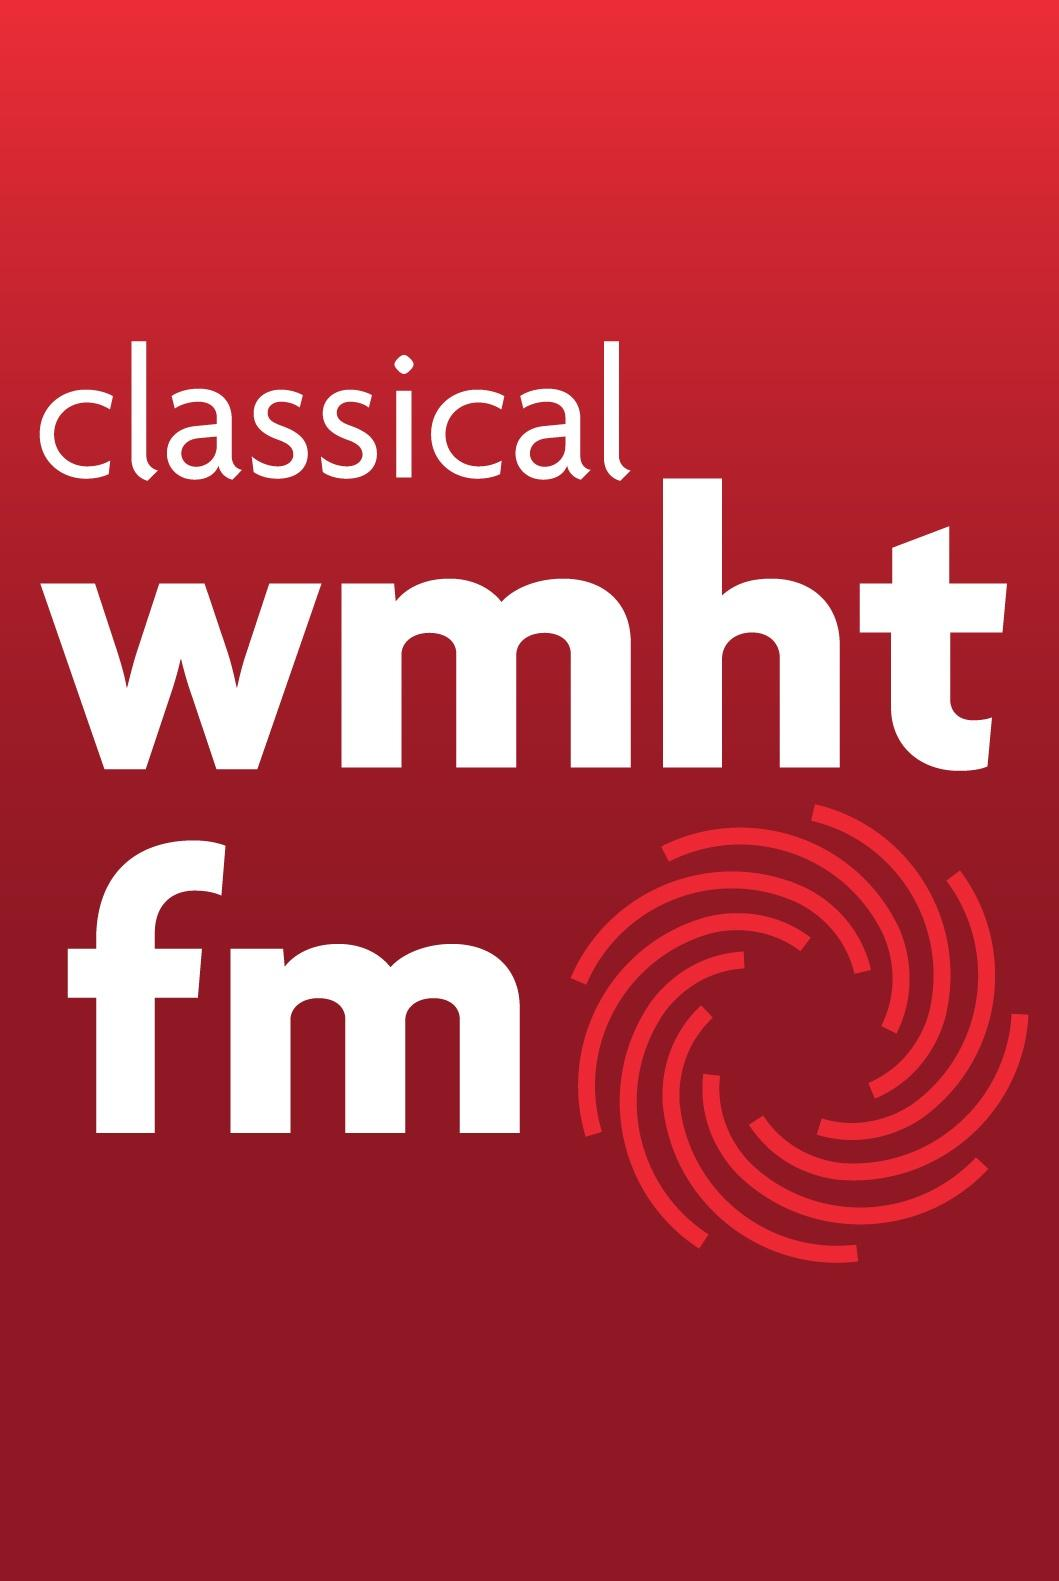 Classical WMHT-FM logo in red and white